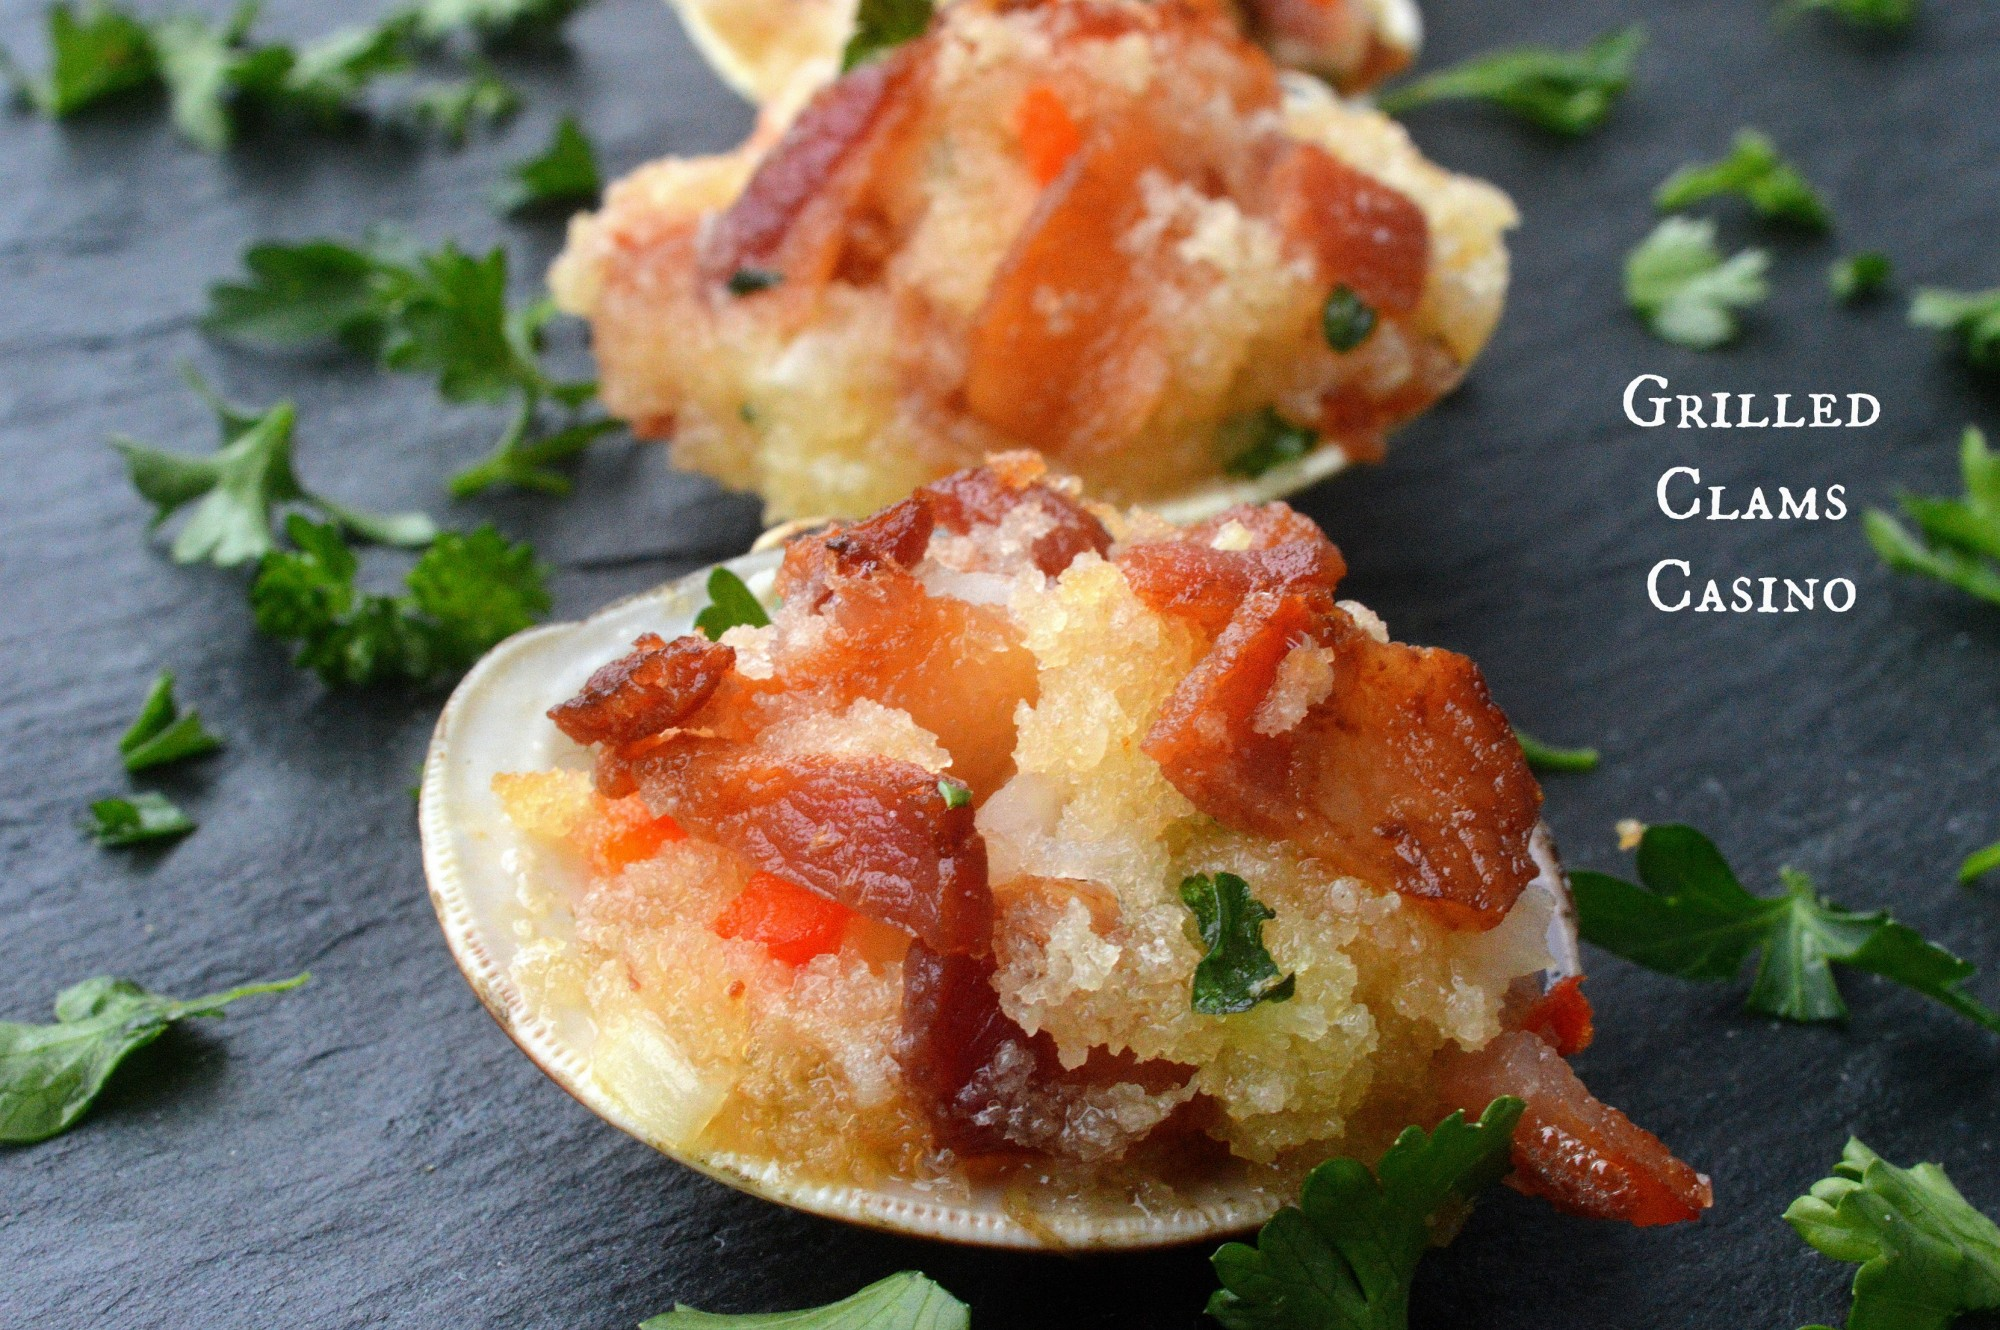 Grilled Clams Casino Loaded with Bacon and full of flavor these are always the star of the party!